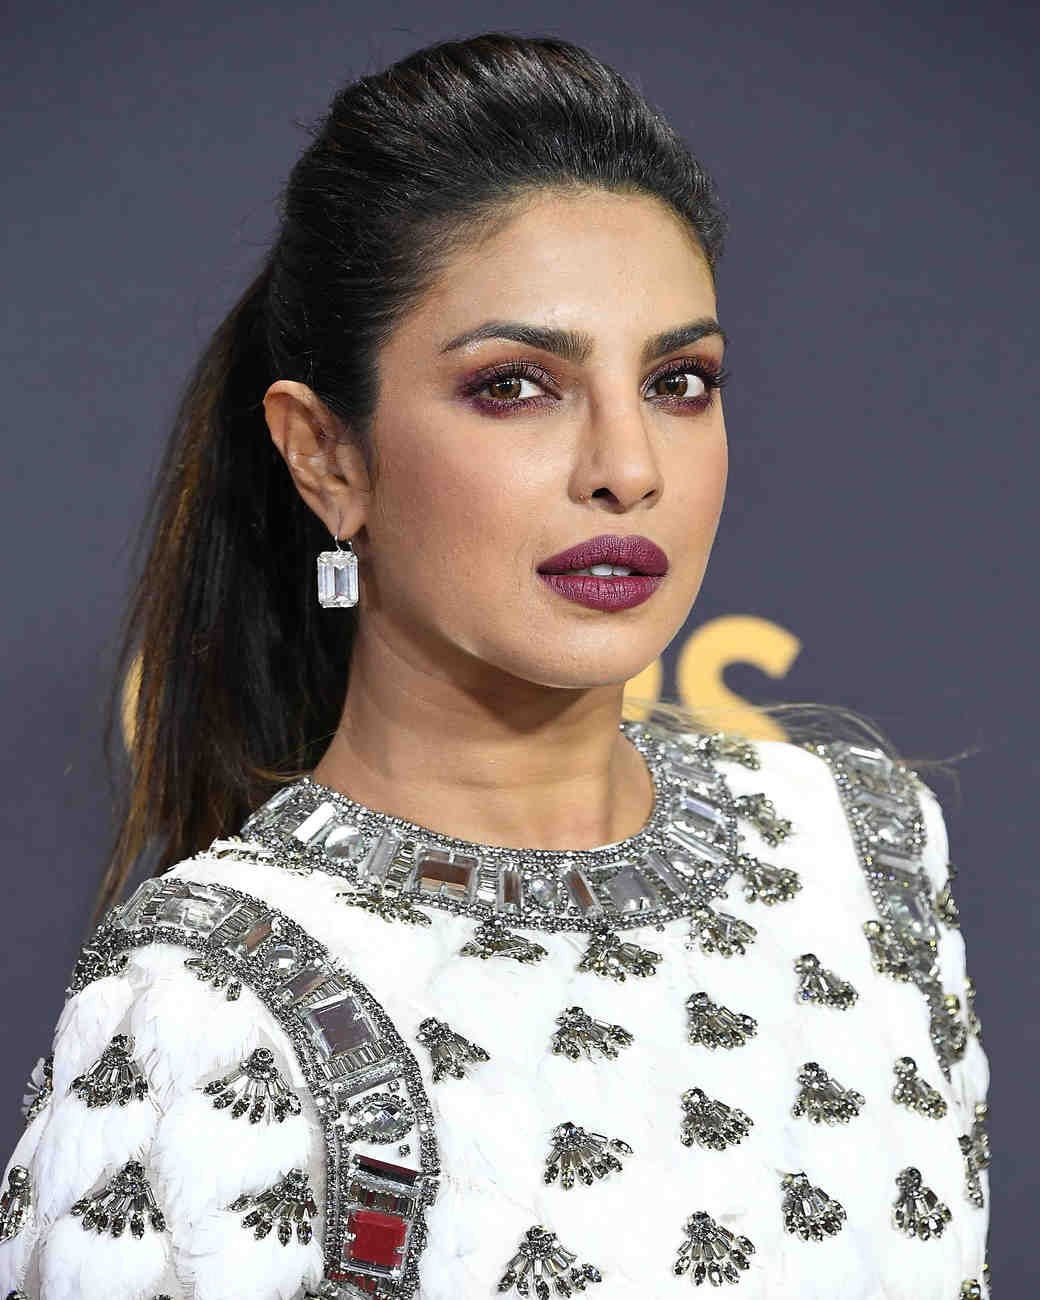 priyanka chopra beauty look 2017 emmys